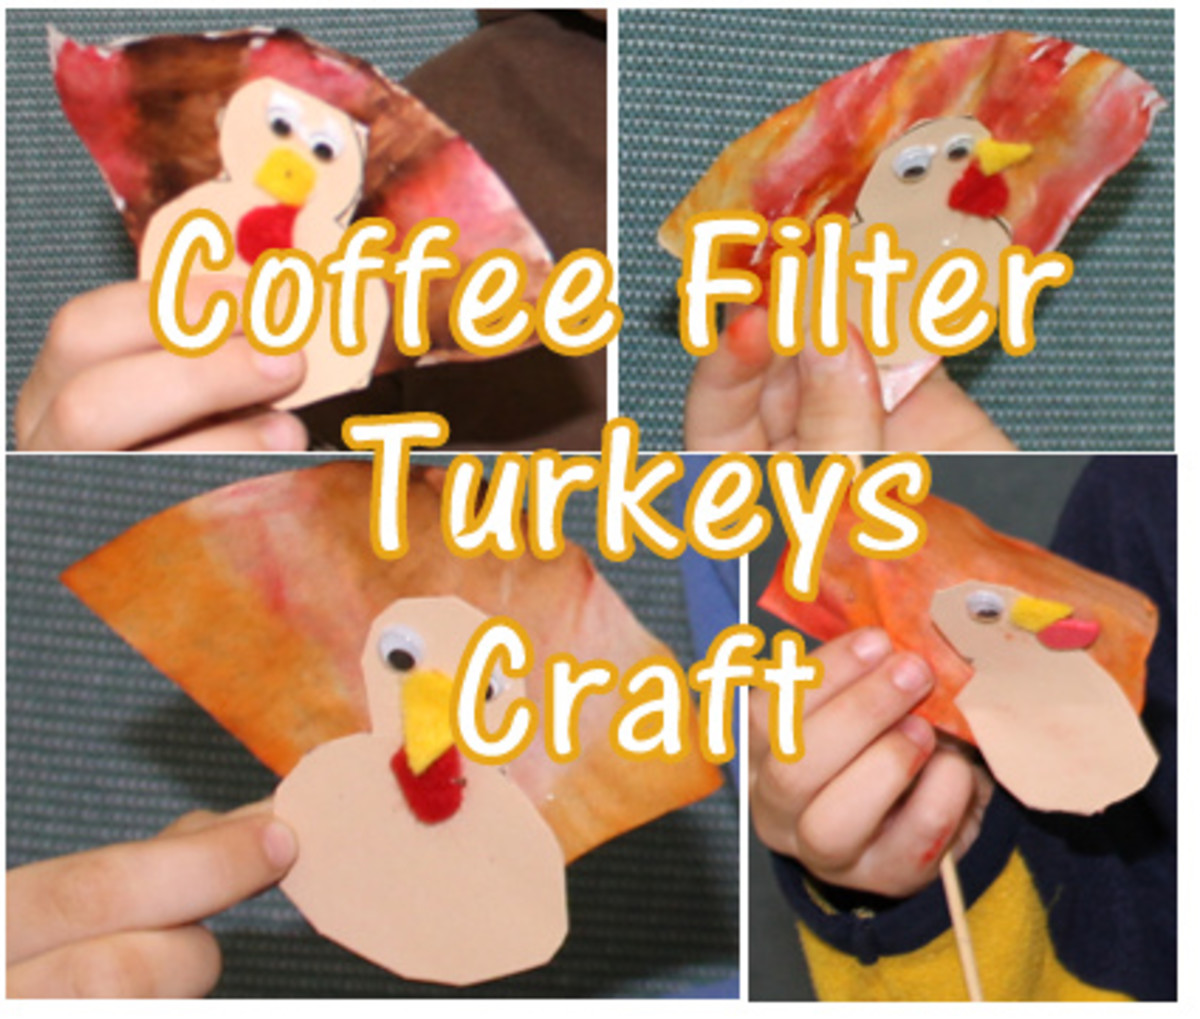 Coffee Filter Turkey Crafts